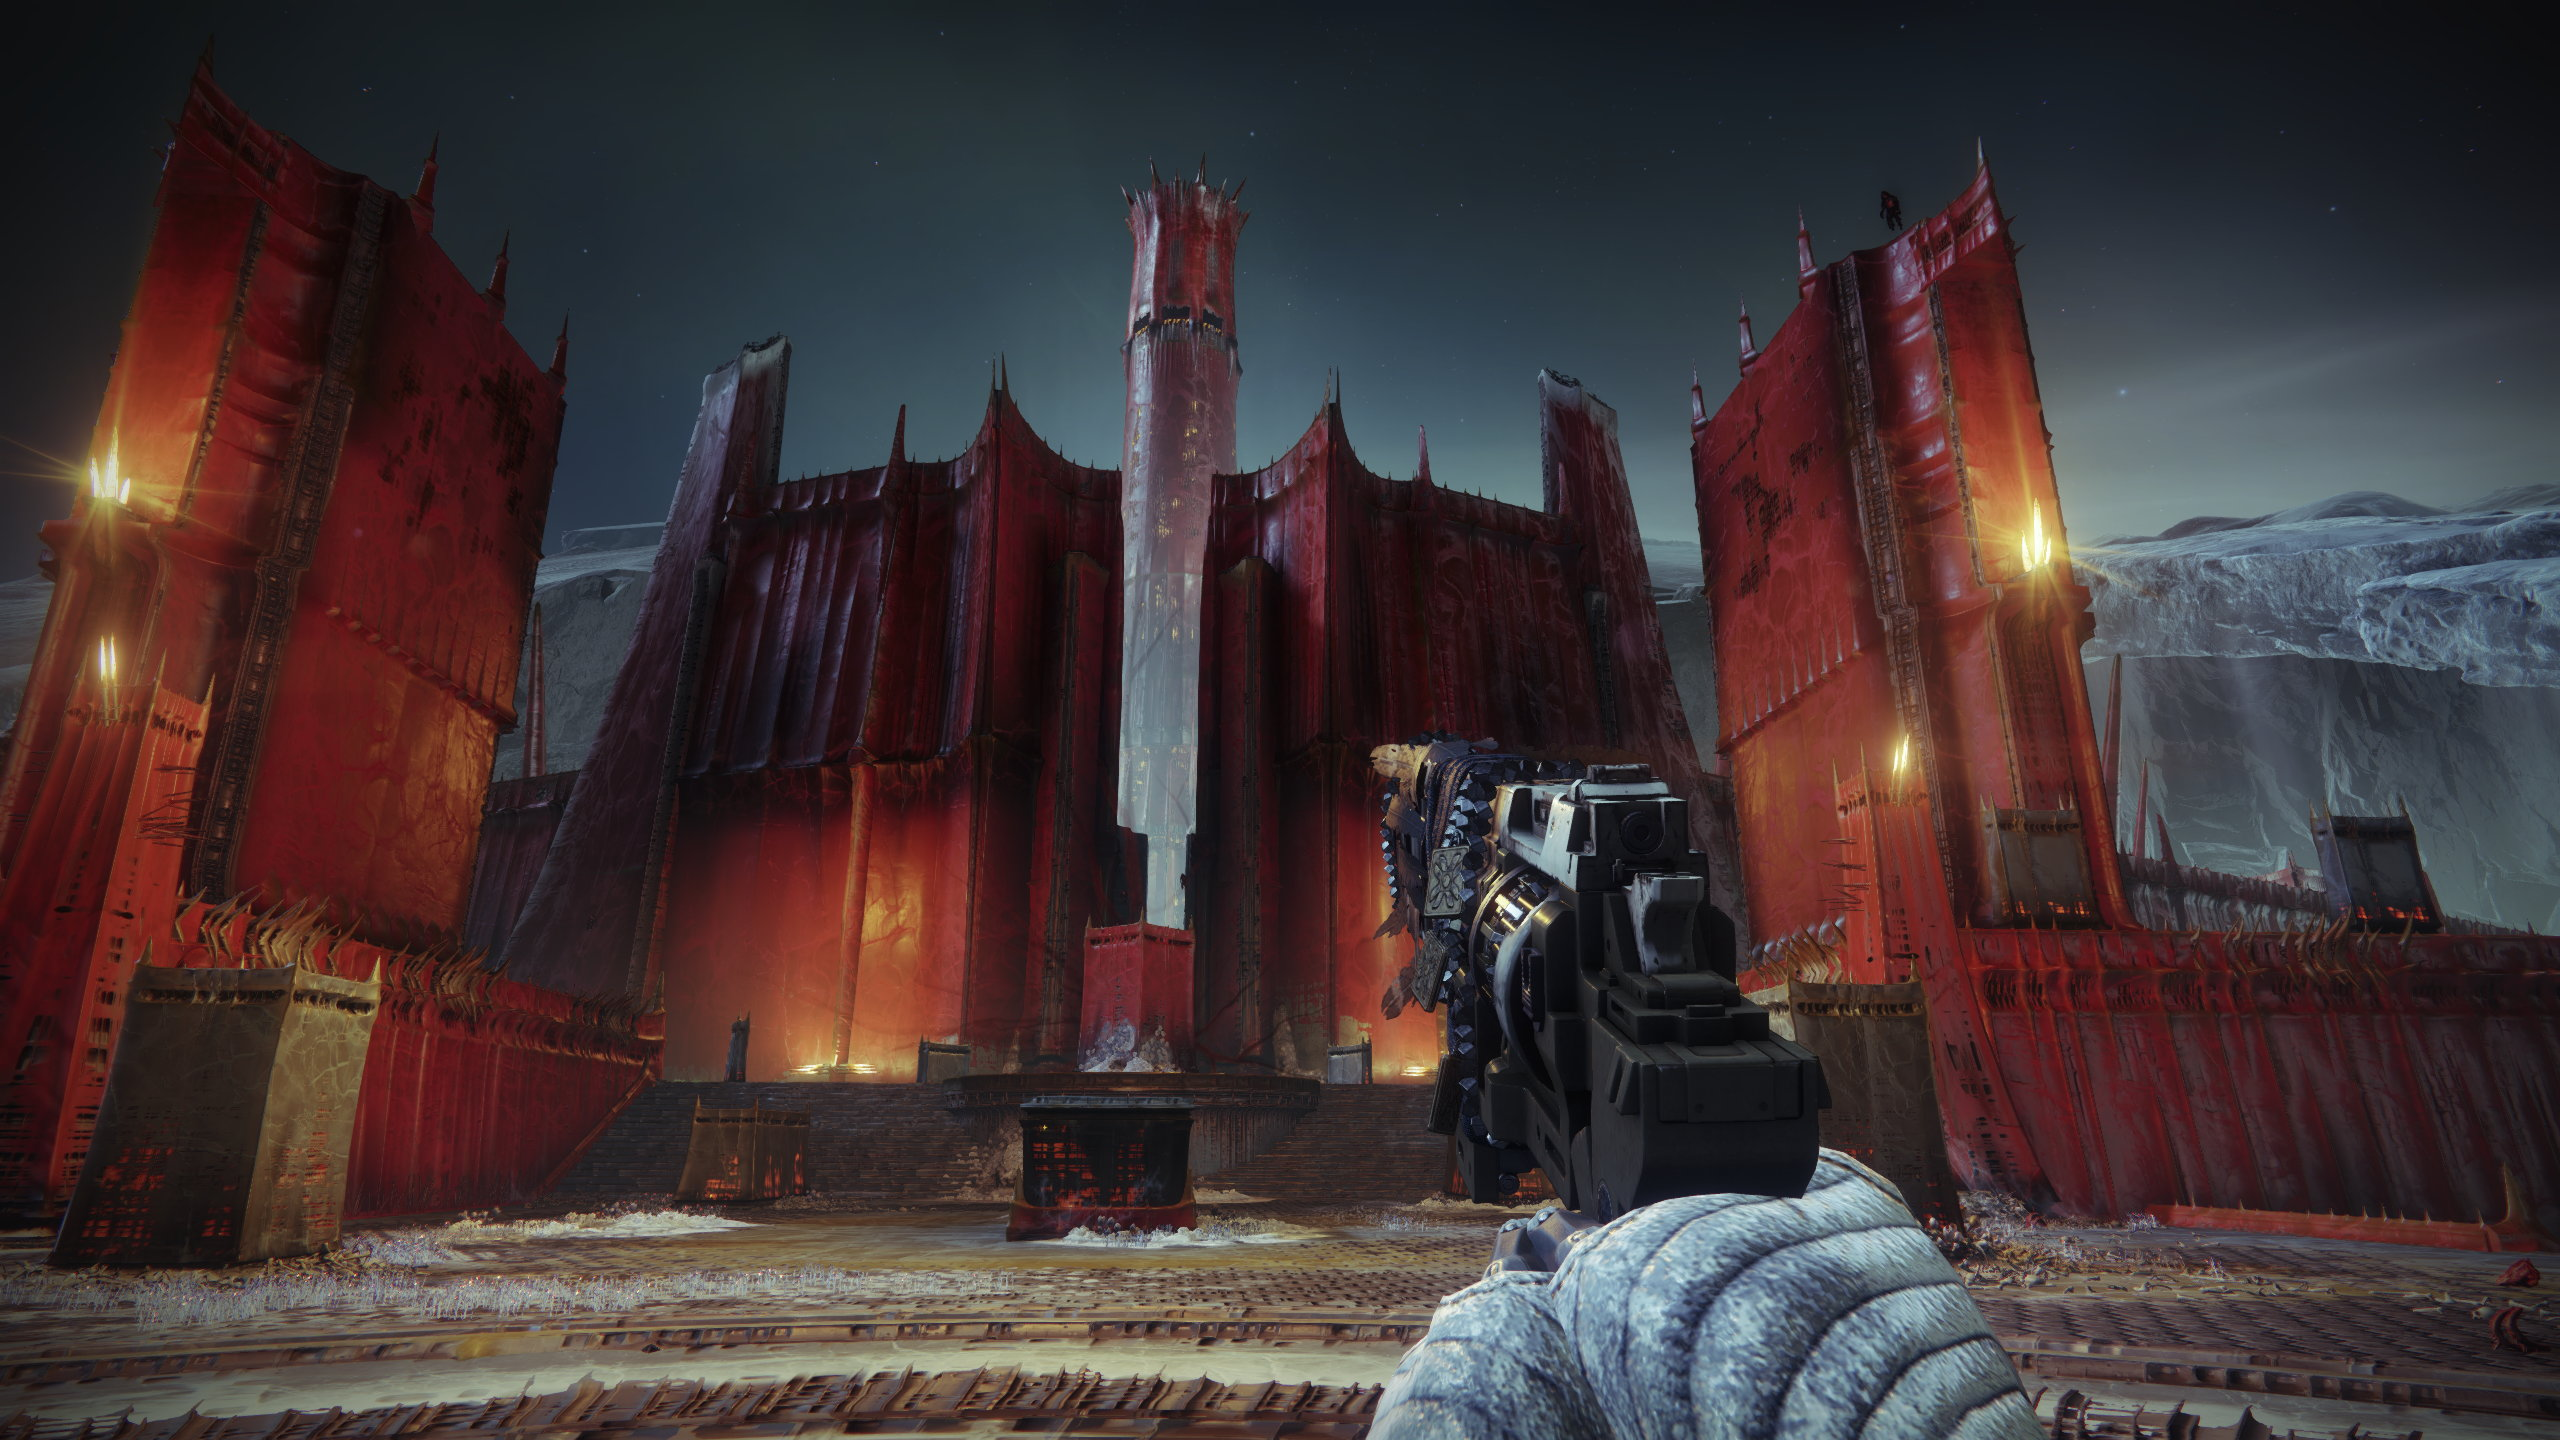 Oct 3 2019 I Adore Destiny 2 Shadowkeep S Spooky Moon Guns Destiny 2 Contact Rockpapershotgun Com Alice O Connor Moon S Haunted You Ve Likely Heard And In Destiny 2 S Shadowkeep Expansion We Re Sent To Bust Those Ghosts I Adore The Tools Let us know how your. shadowkeep s spooky moon guns destiny 2